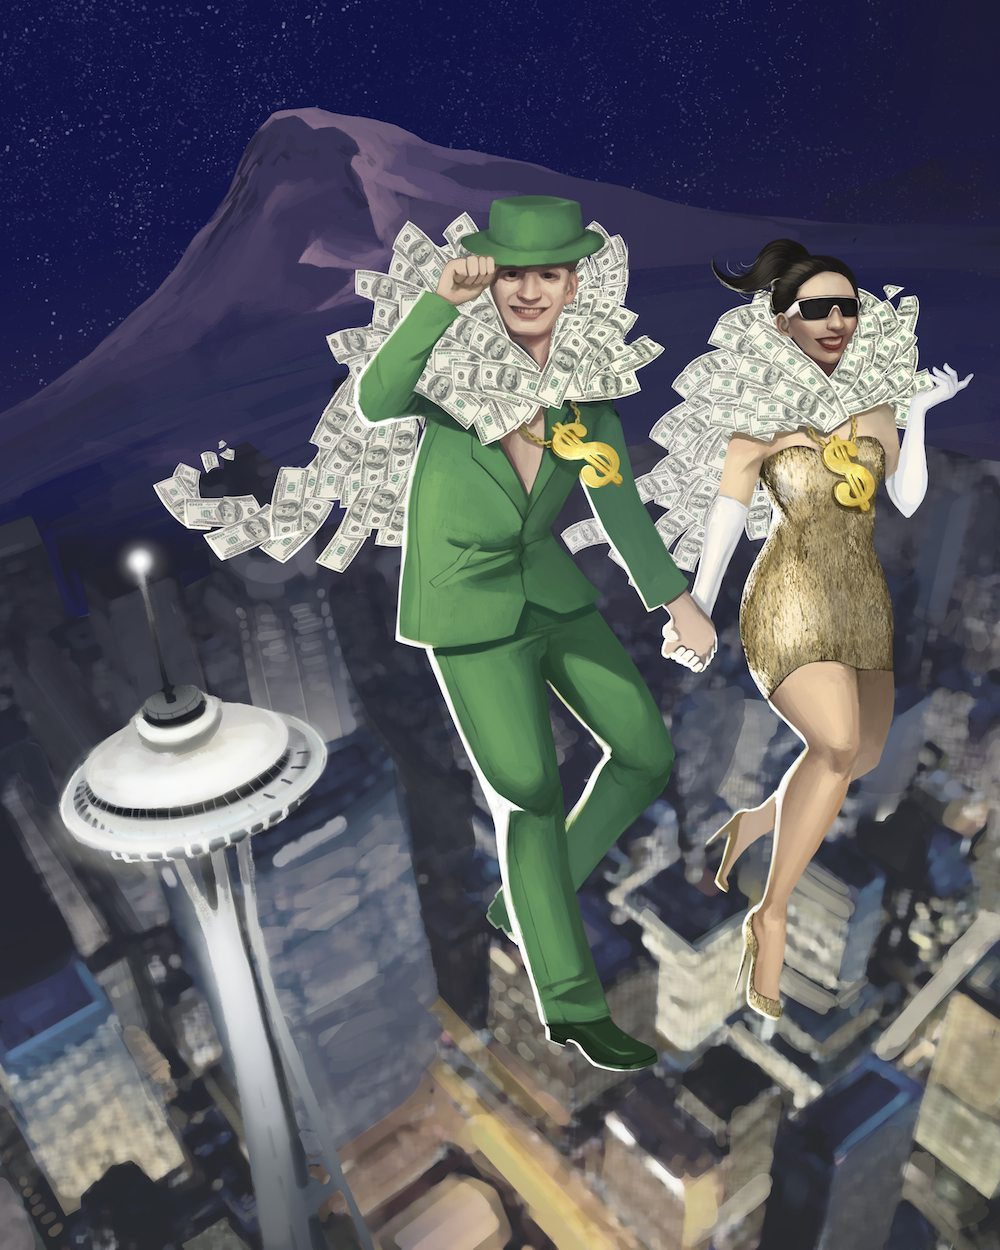 Simoney and Cashley Flying over Seattle by Andy Lamarca via ArtCorgi